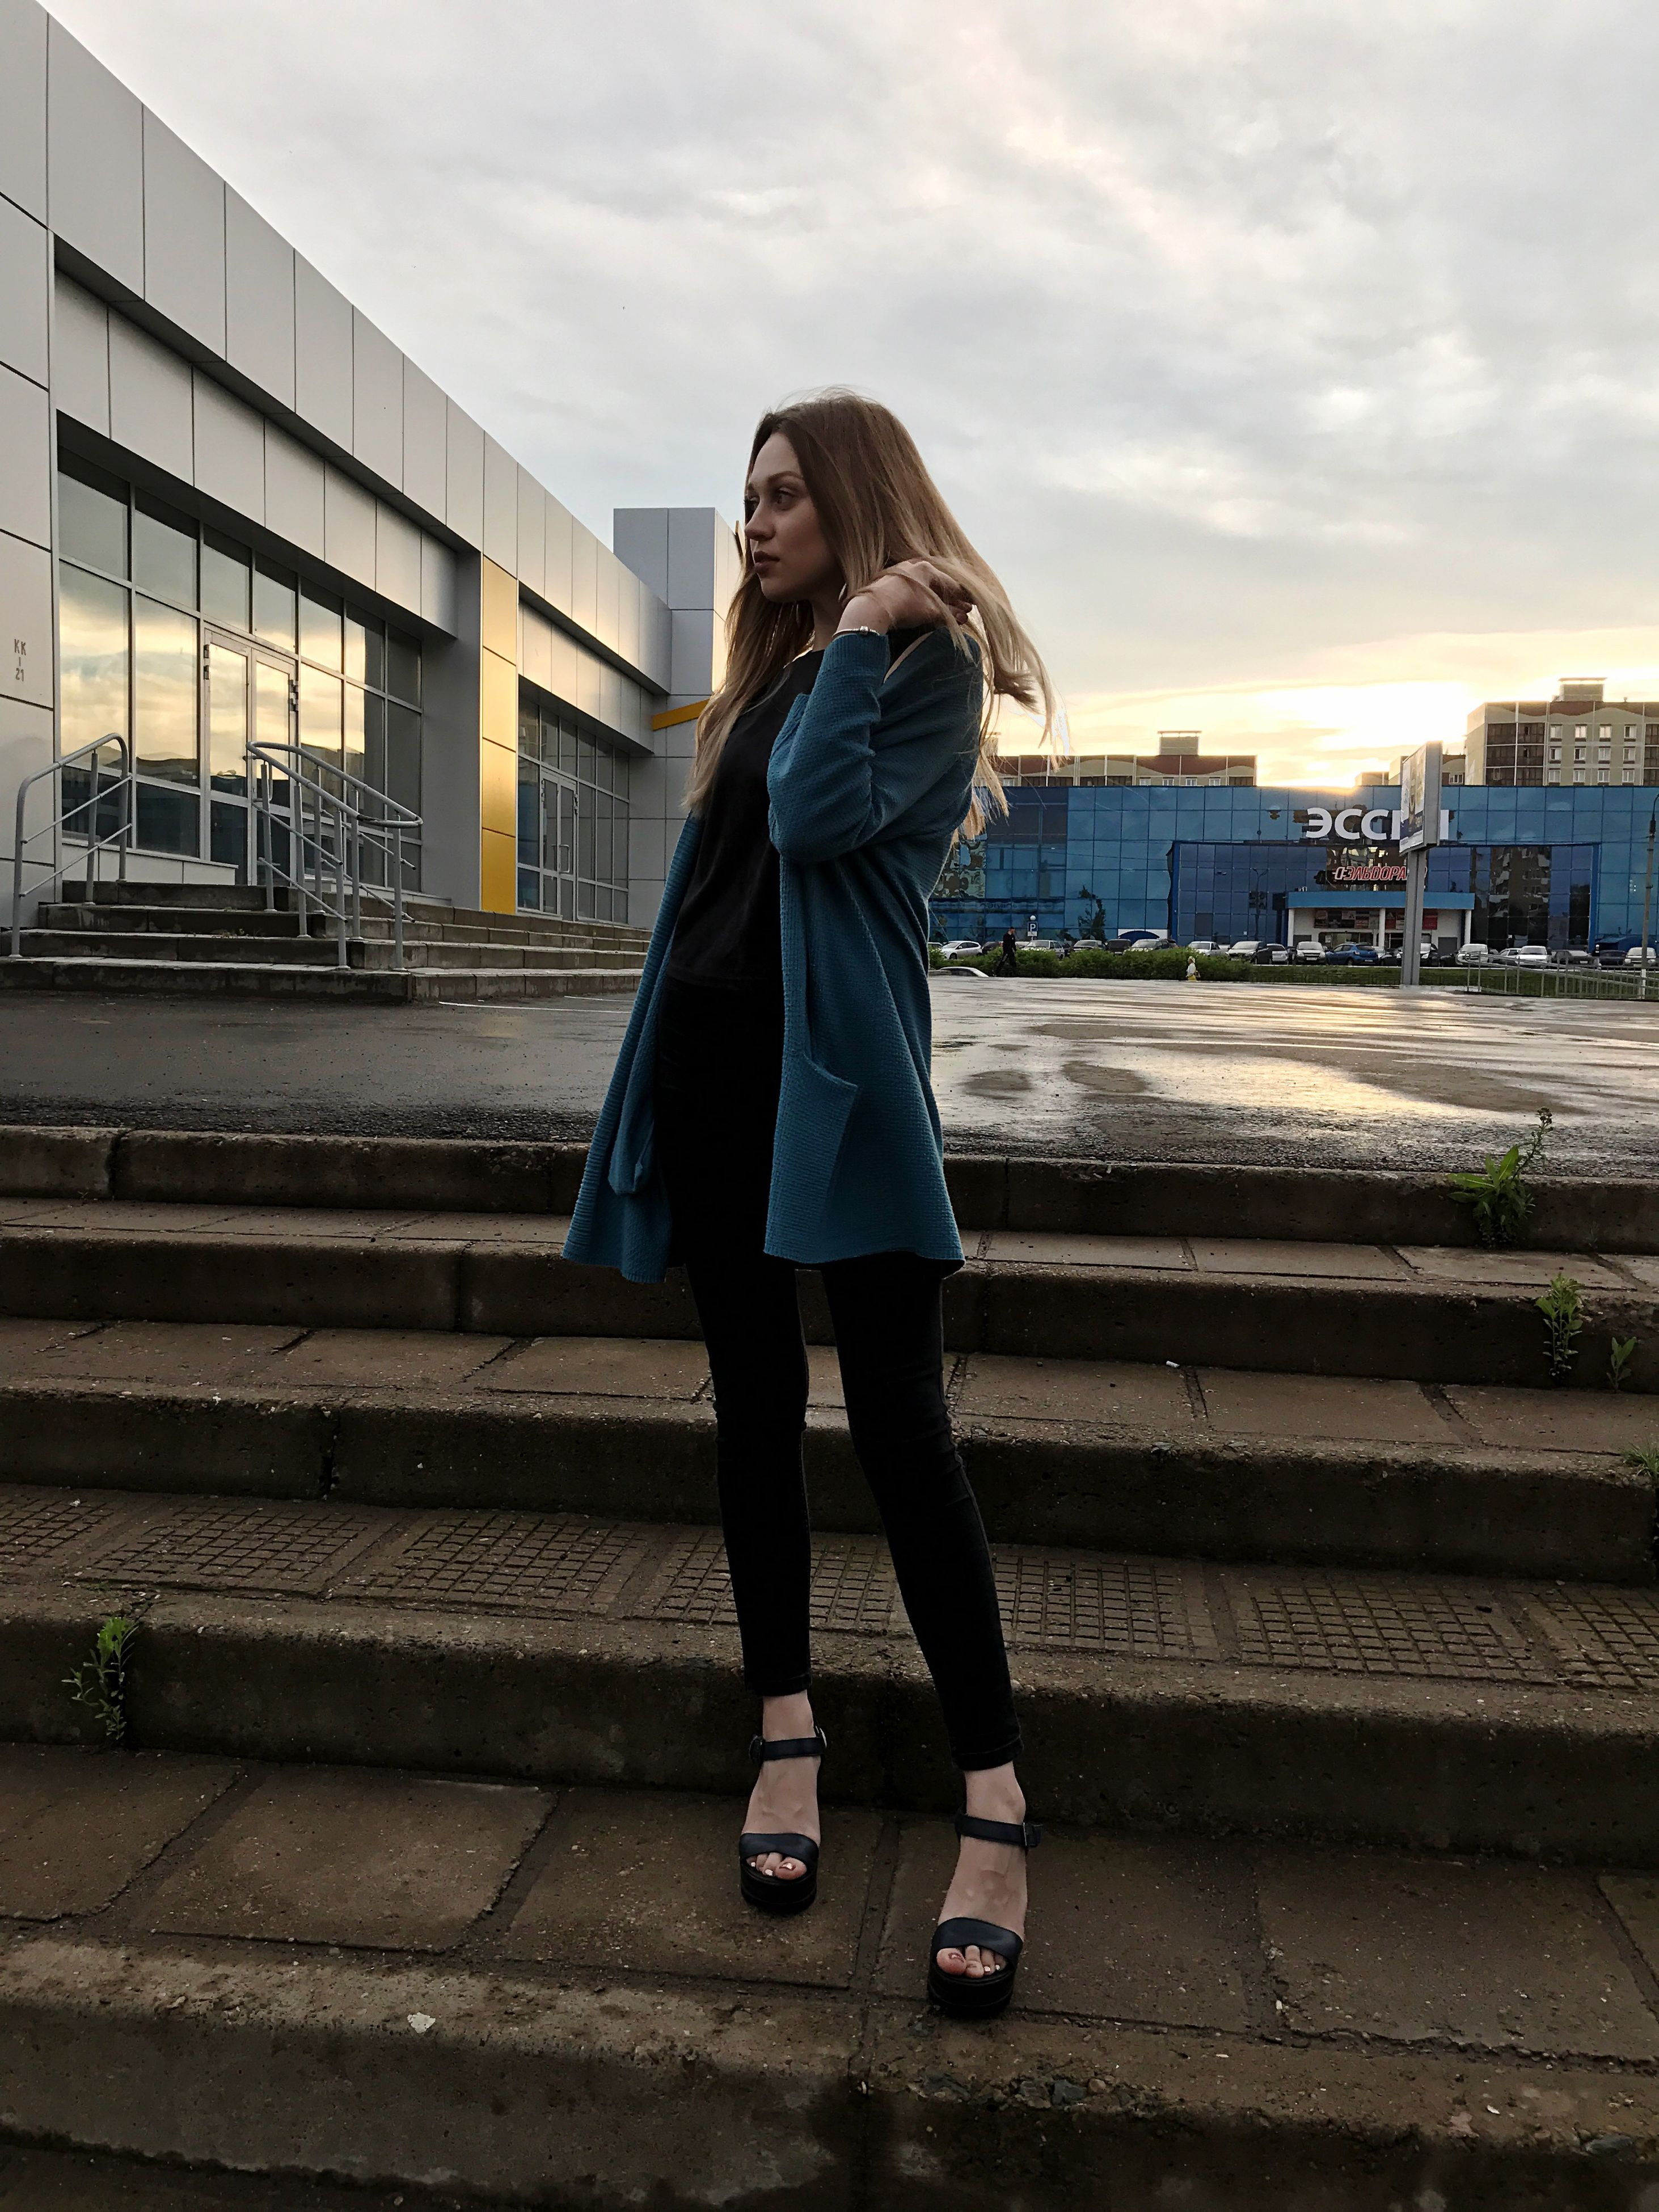 one person, full length, real people, built structure, architecture, young adult, outdoors, lifestyles, long hair, young women, leisure activity, building exterior, standing, beautiful woman, sky, sunset, city, women, day, smiling, portrait, nature